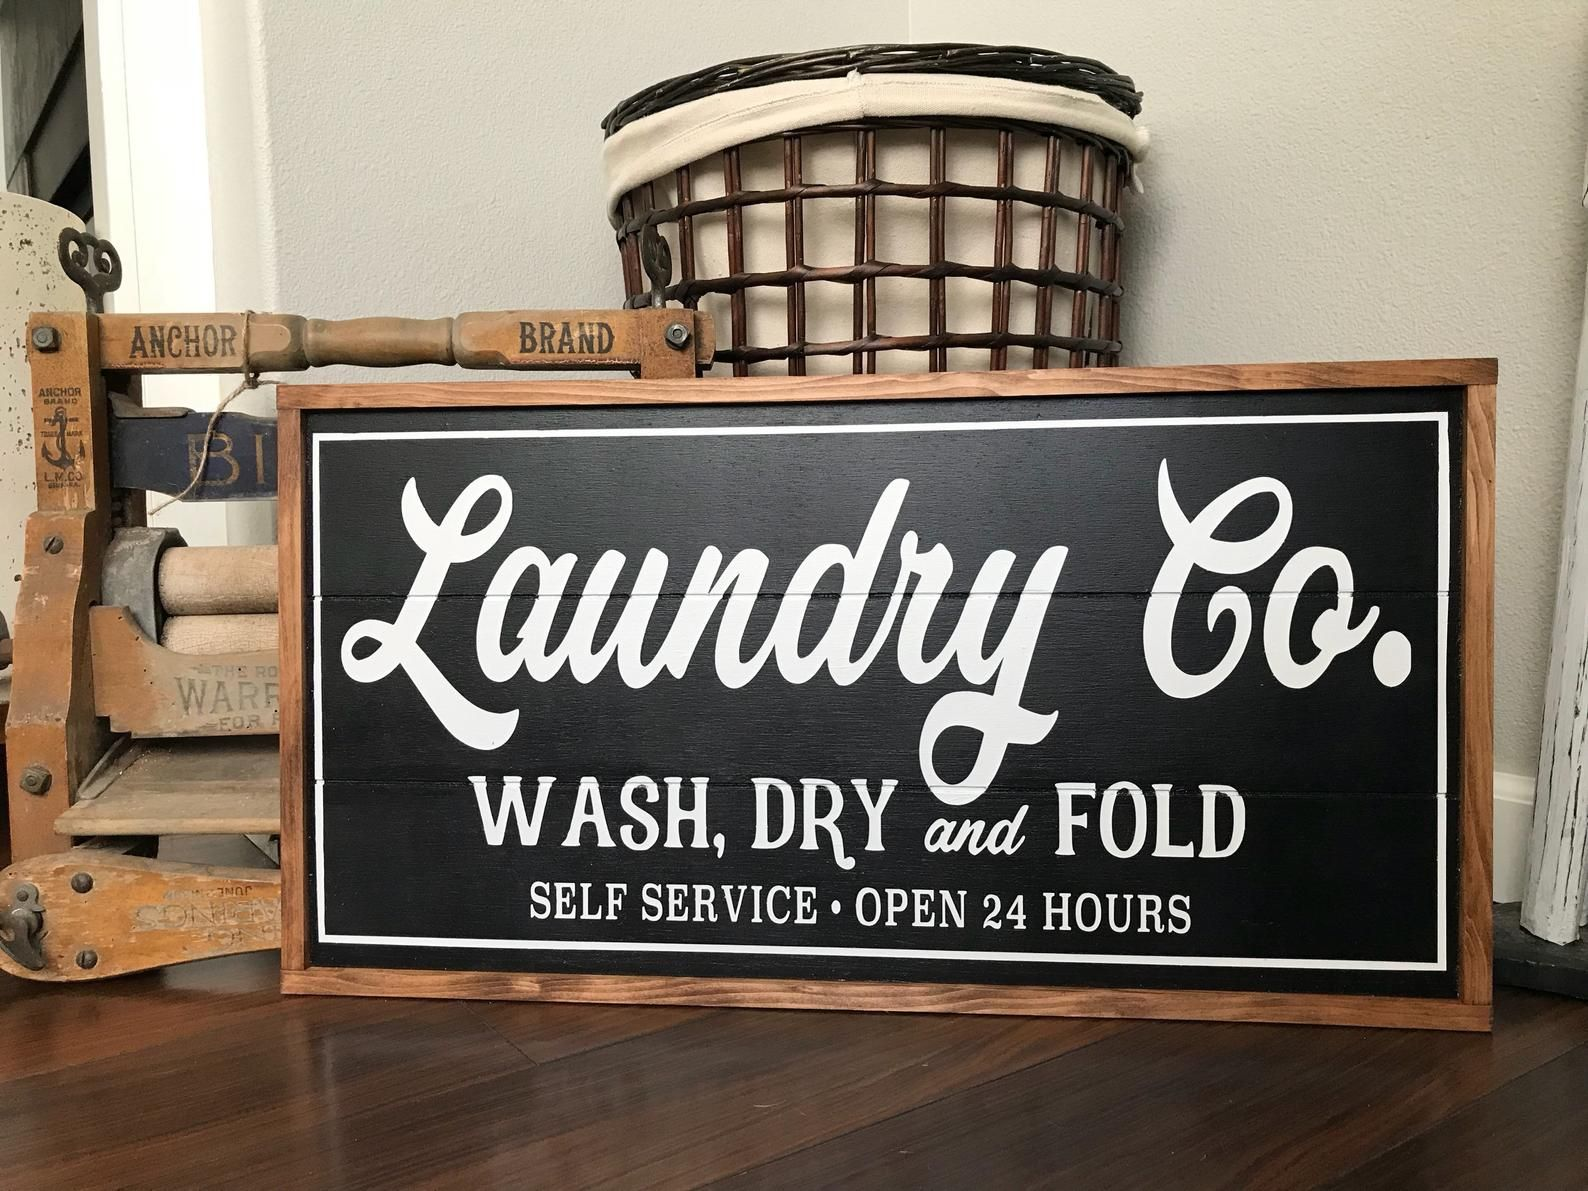 Laundry co wash dry and fold self service laundry